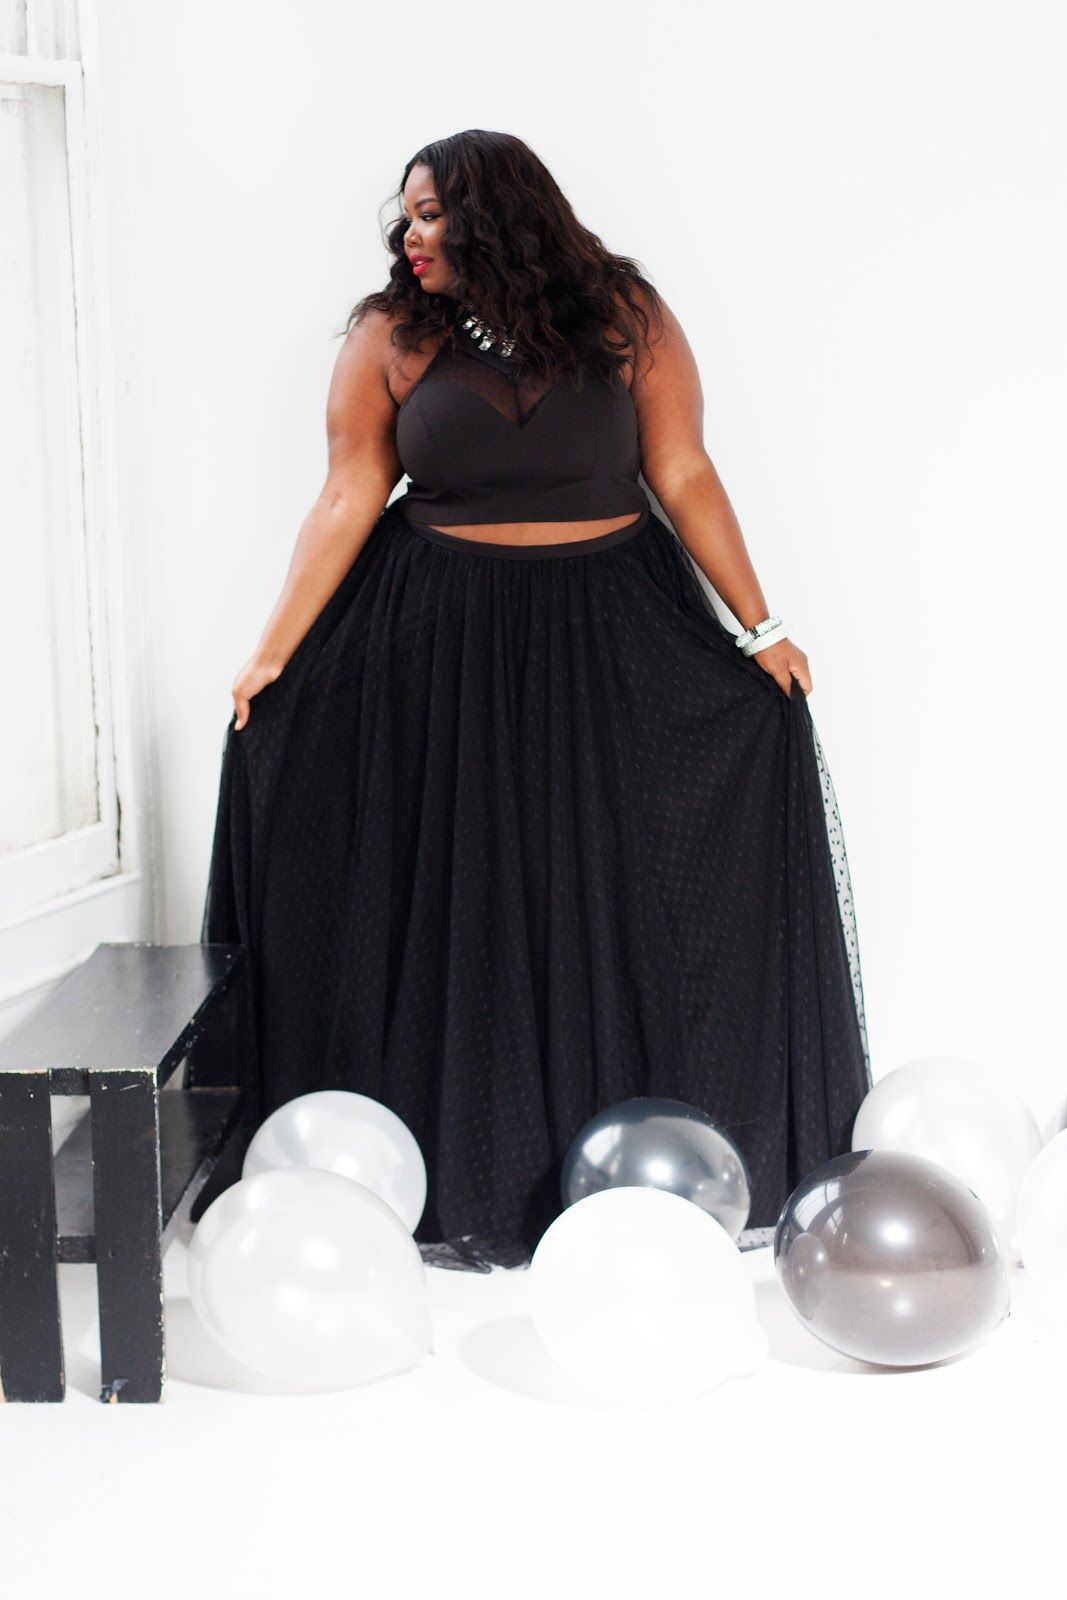 Happy Birthday TOOOOOO MEEEEEE! Plus Size Fashion | My Personal Style | Pinterest | Lace Outfit ...